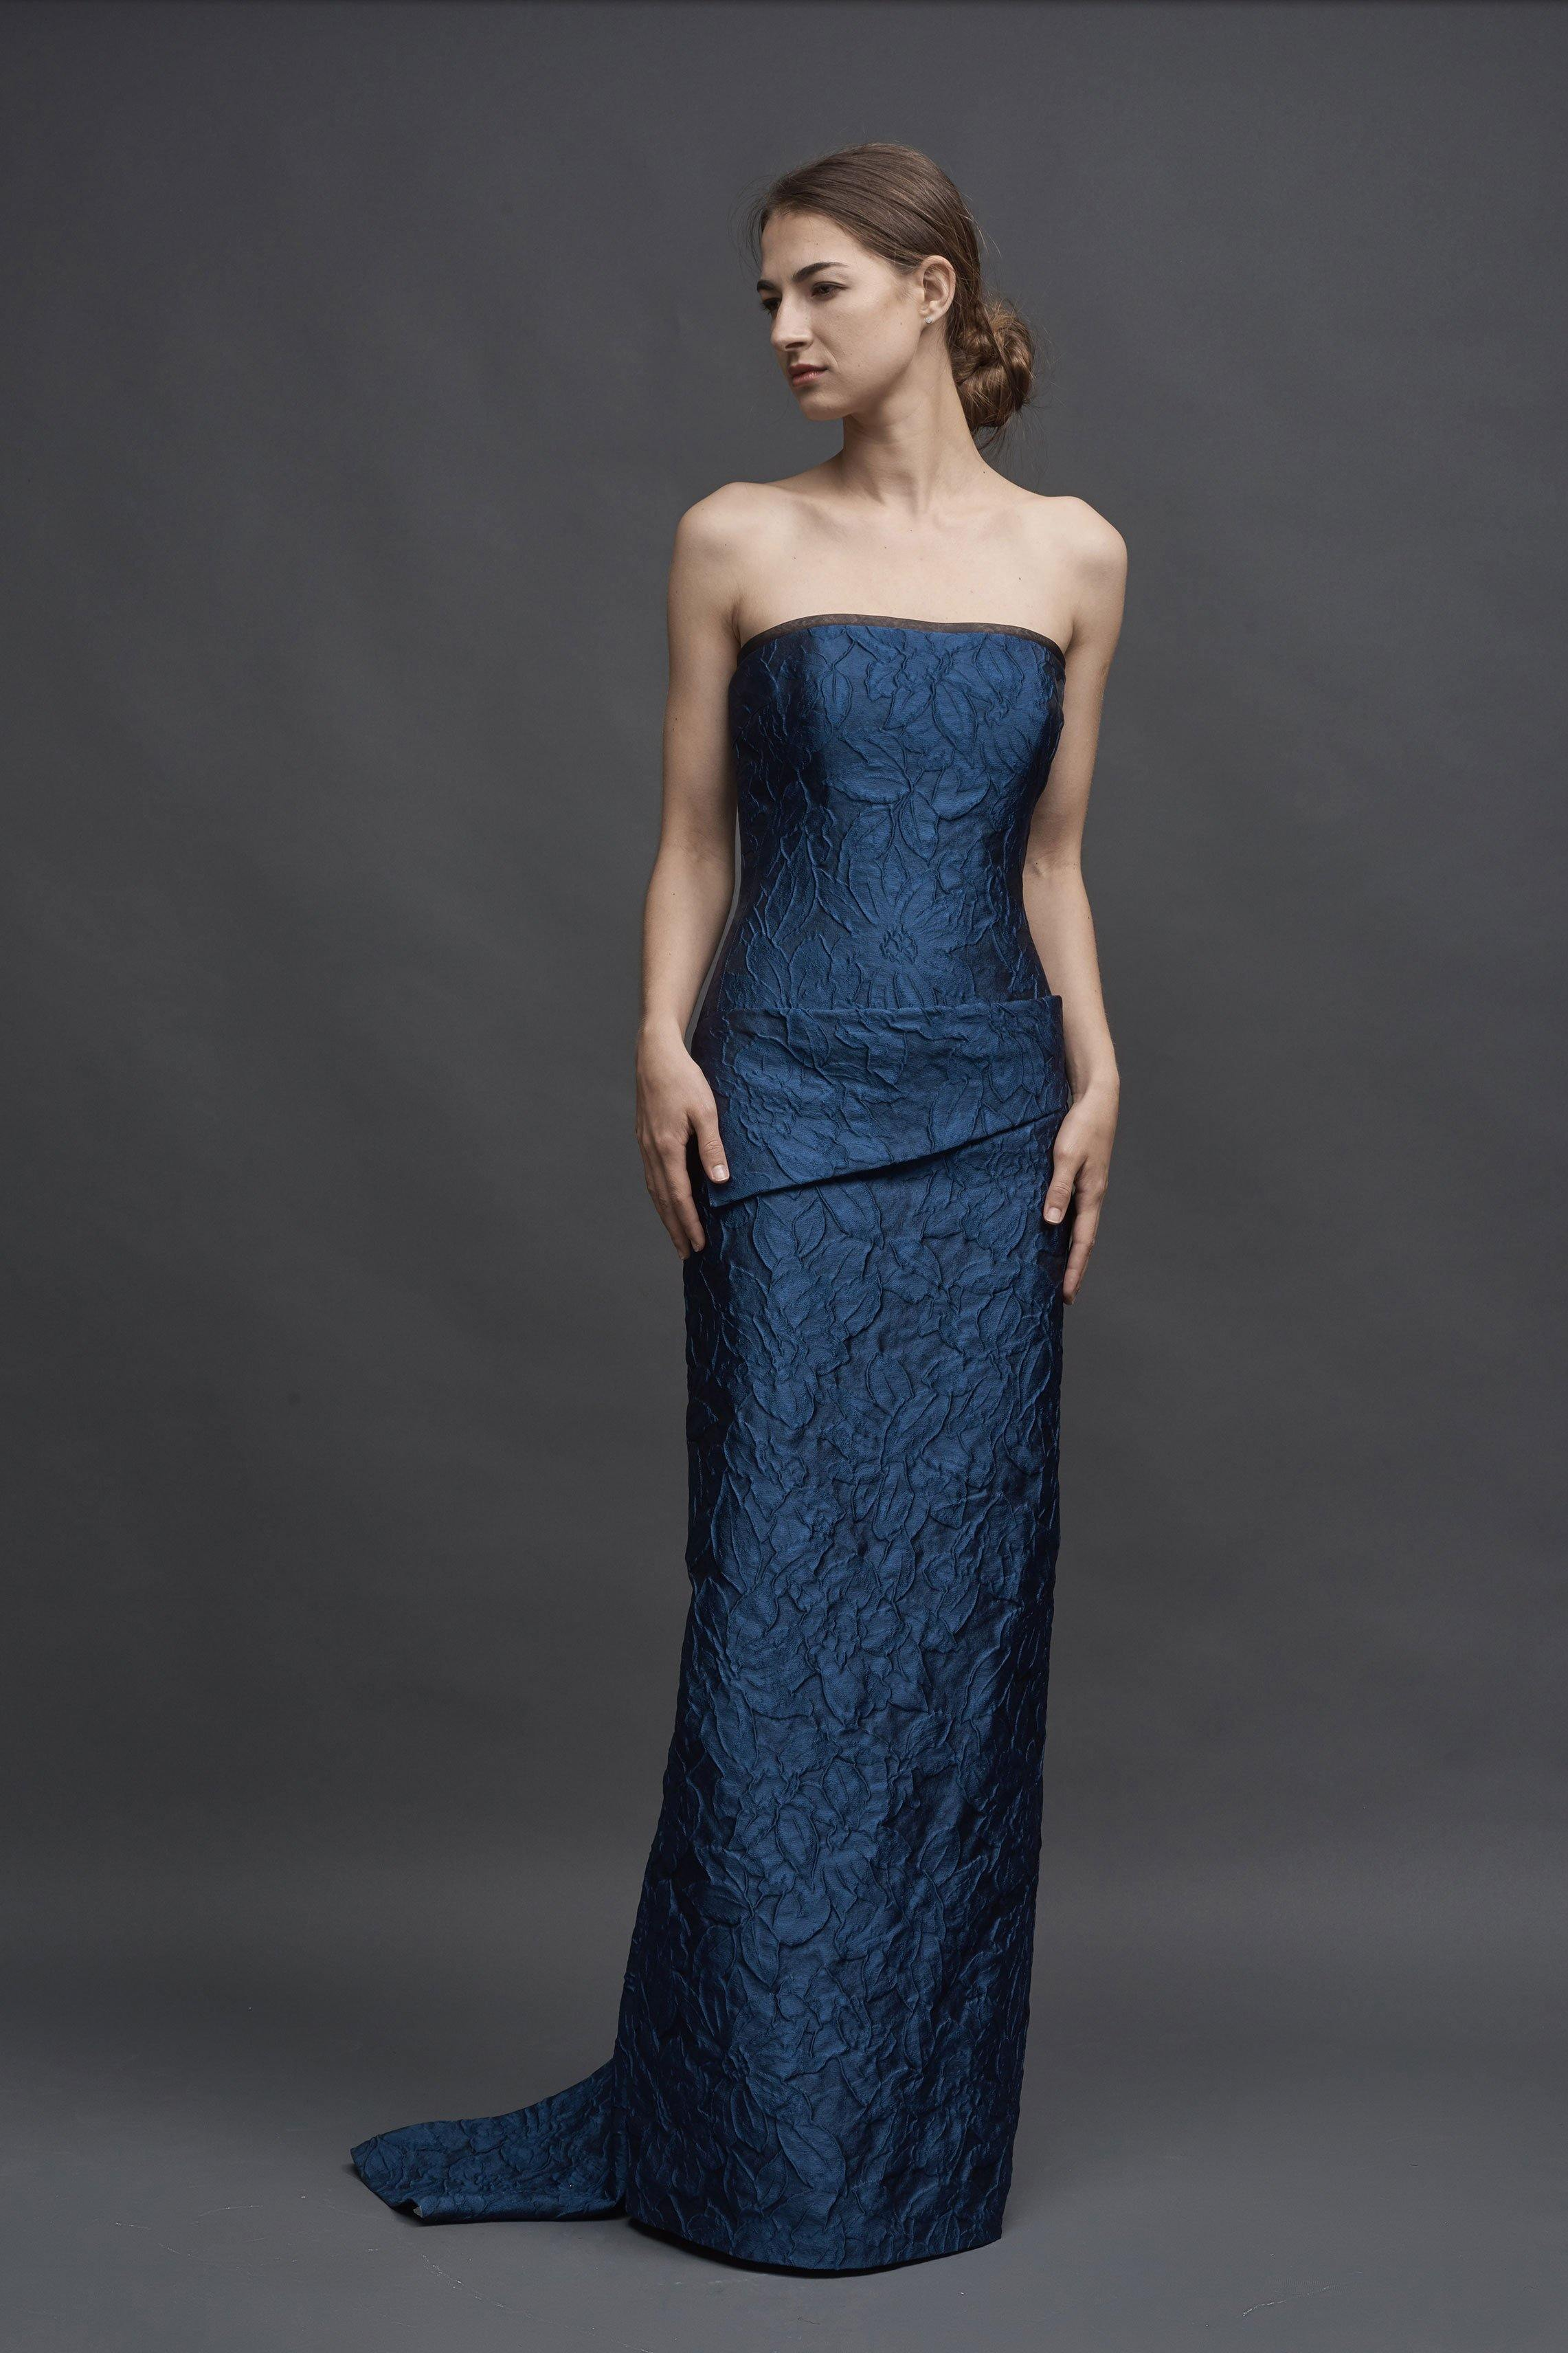 Cloquet Hand-Draped Slim, Strapless Gown, Fishtail Hem Detail